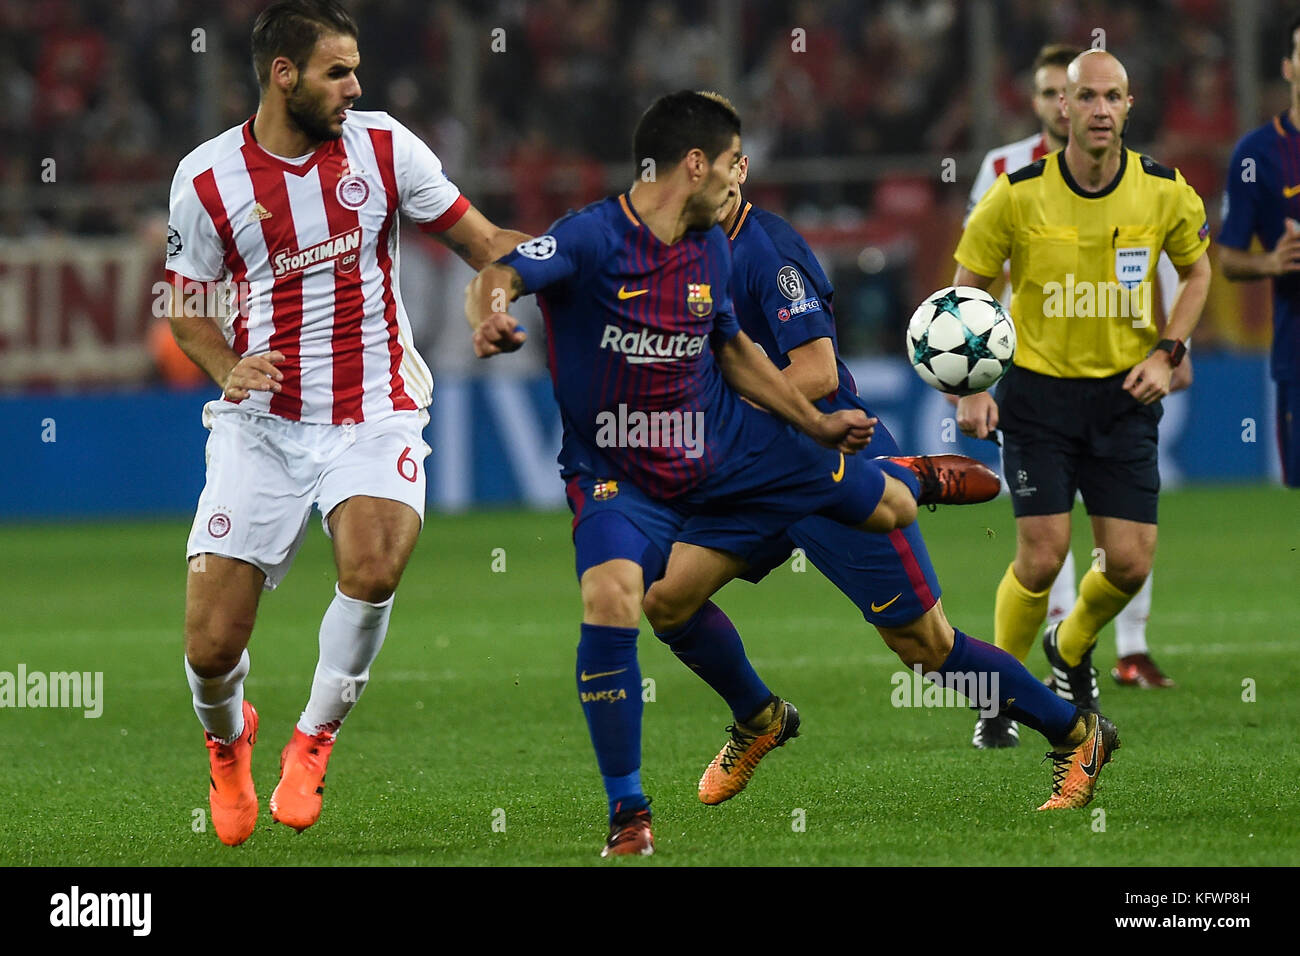 Athens, Greece. 31st Oct, 2017. FC Barcelona's Luis Suarez (C) in action during Group D, UEFA Champions League football Stock Photo